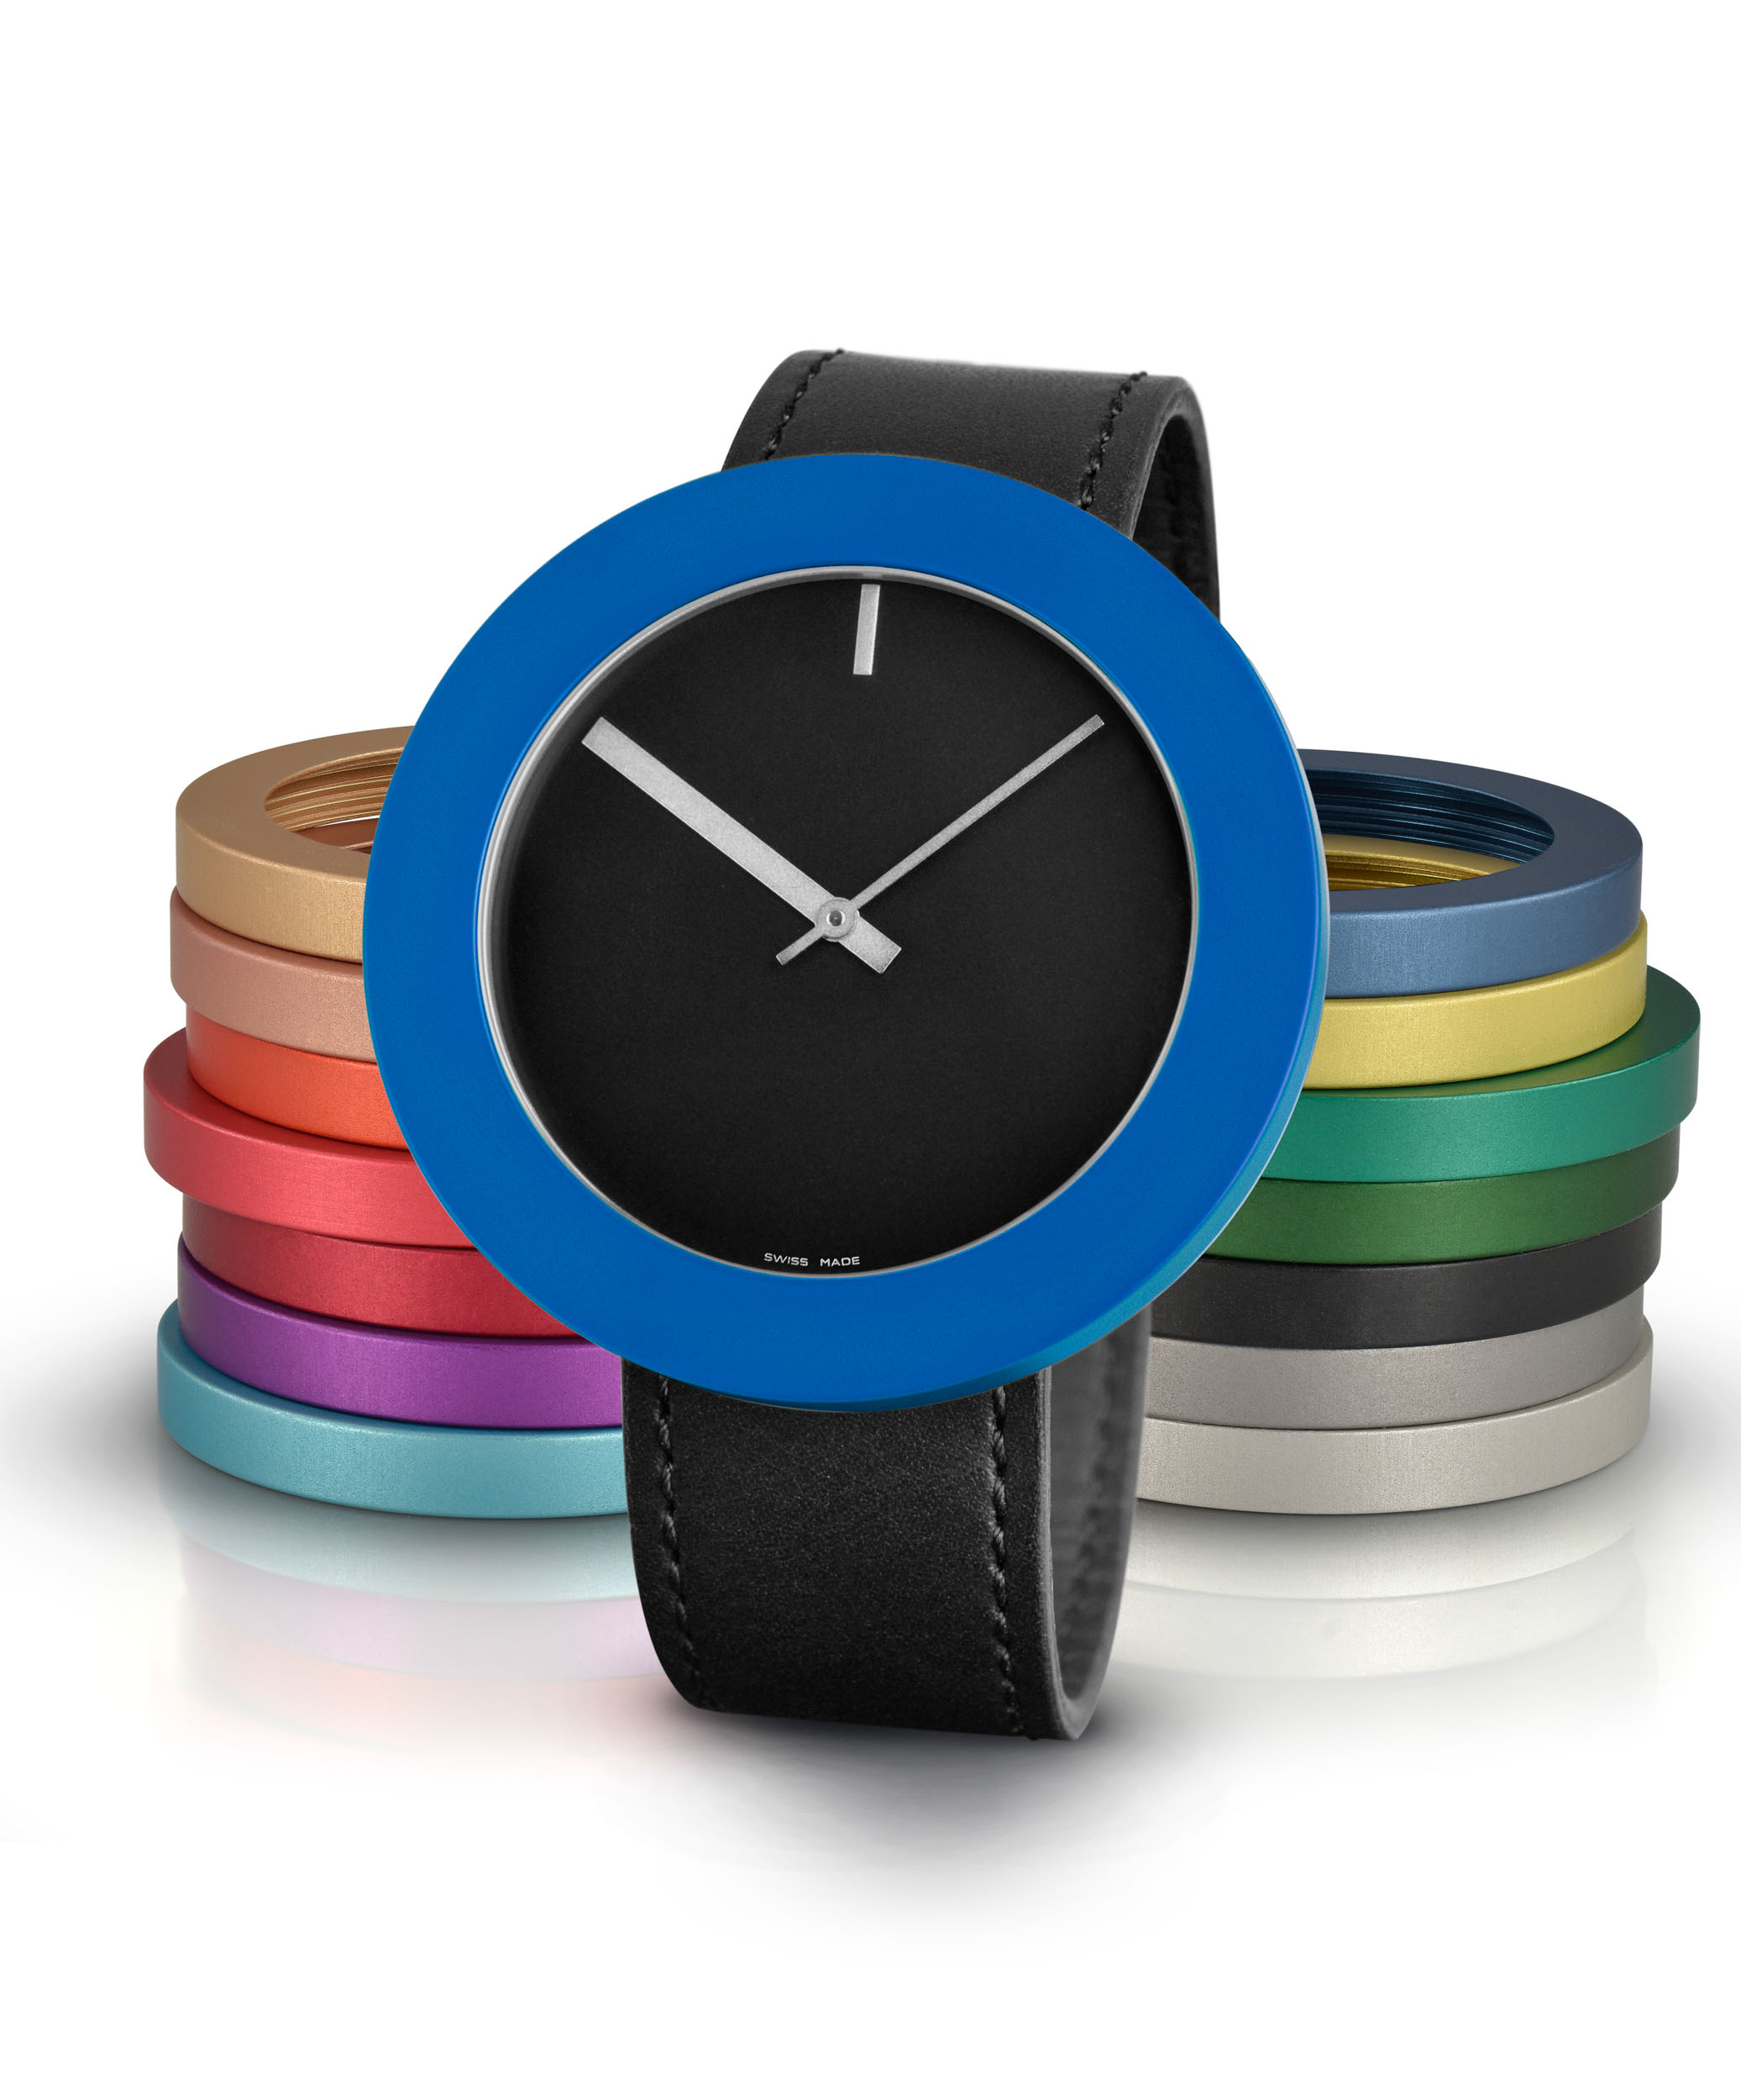 Junod-Vignelli MV44 blk_dial blue_ring leather_band-small.JPG